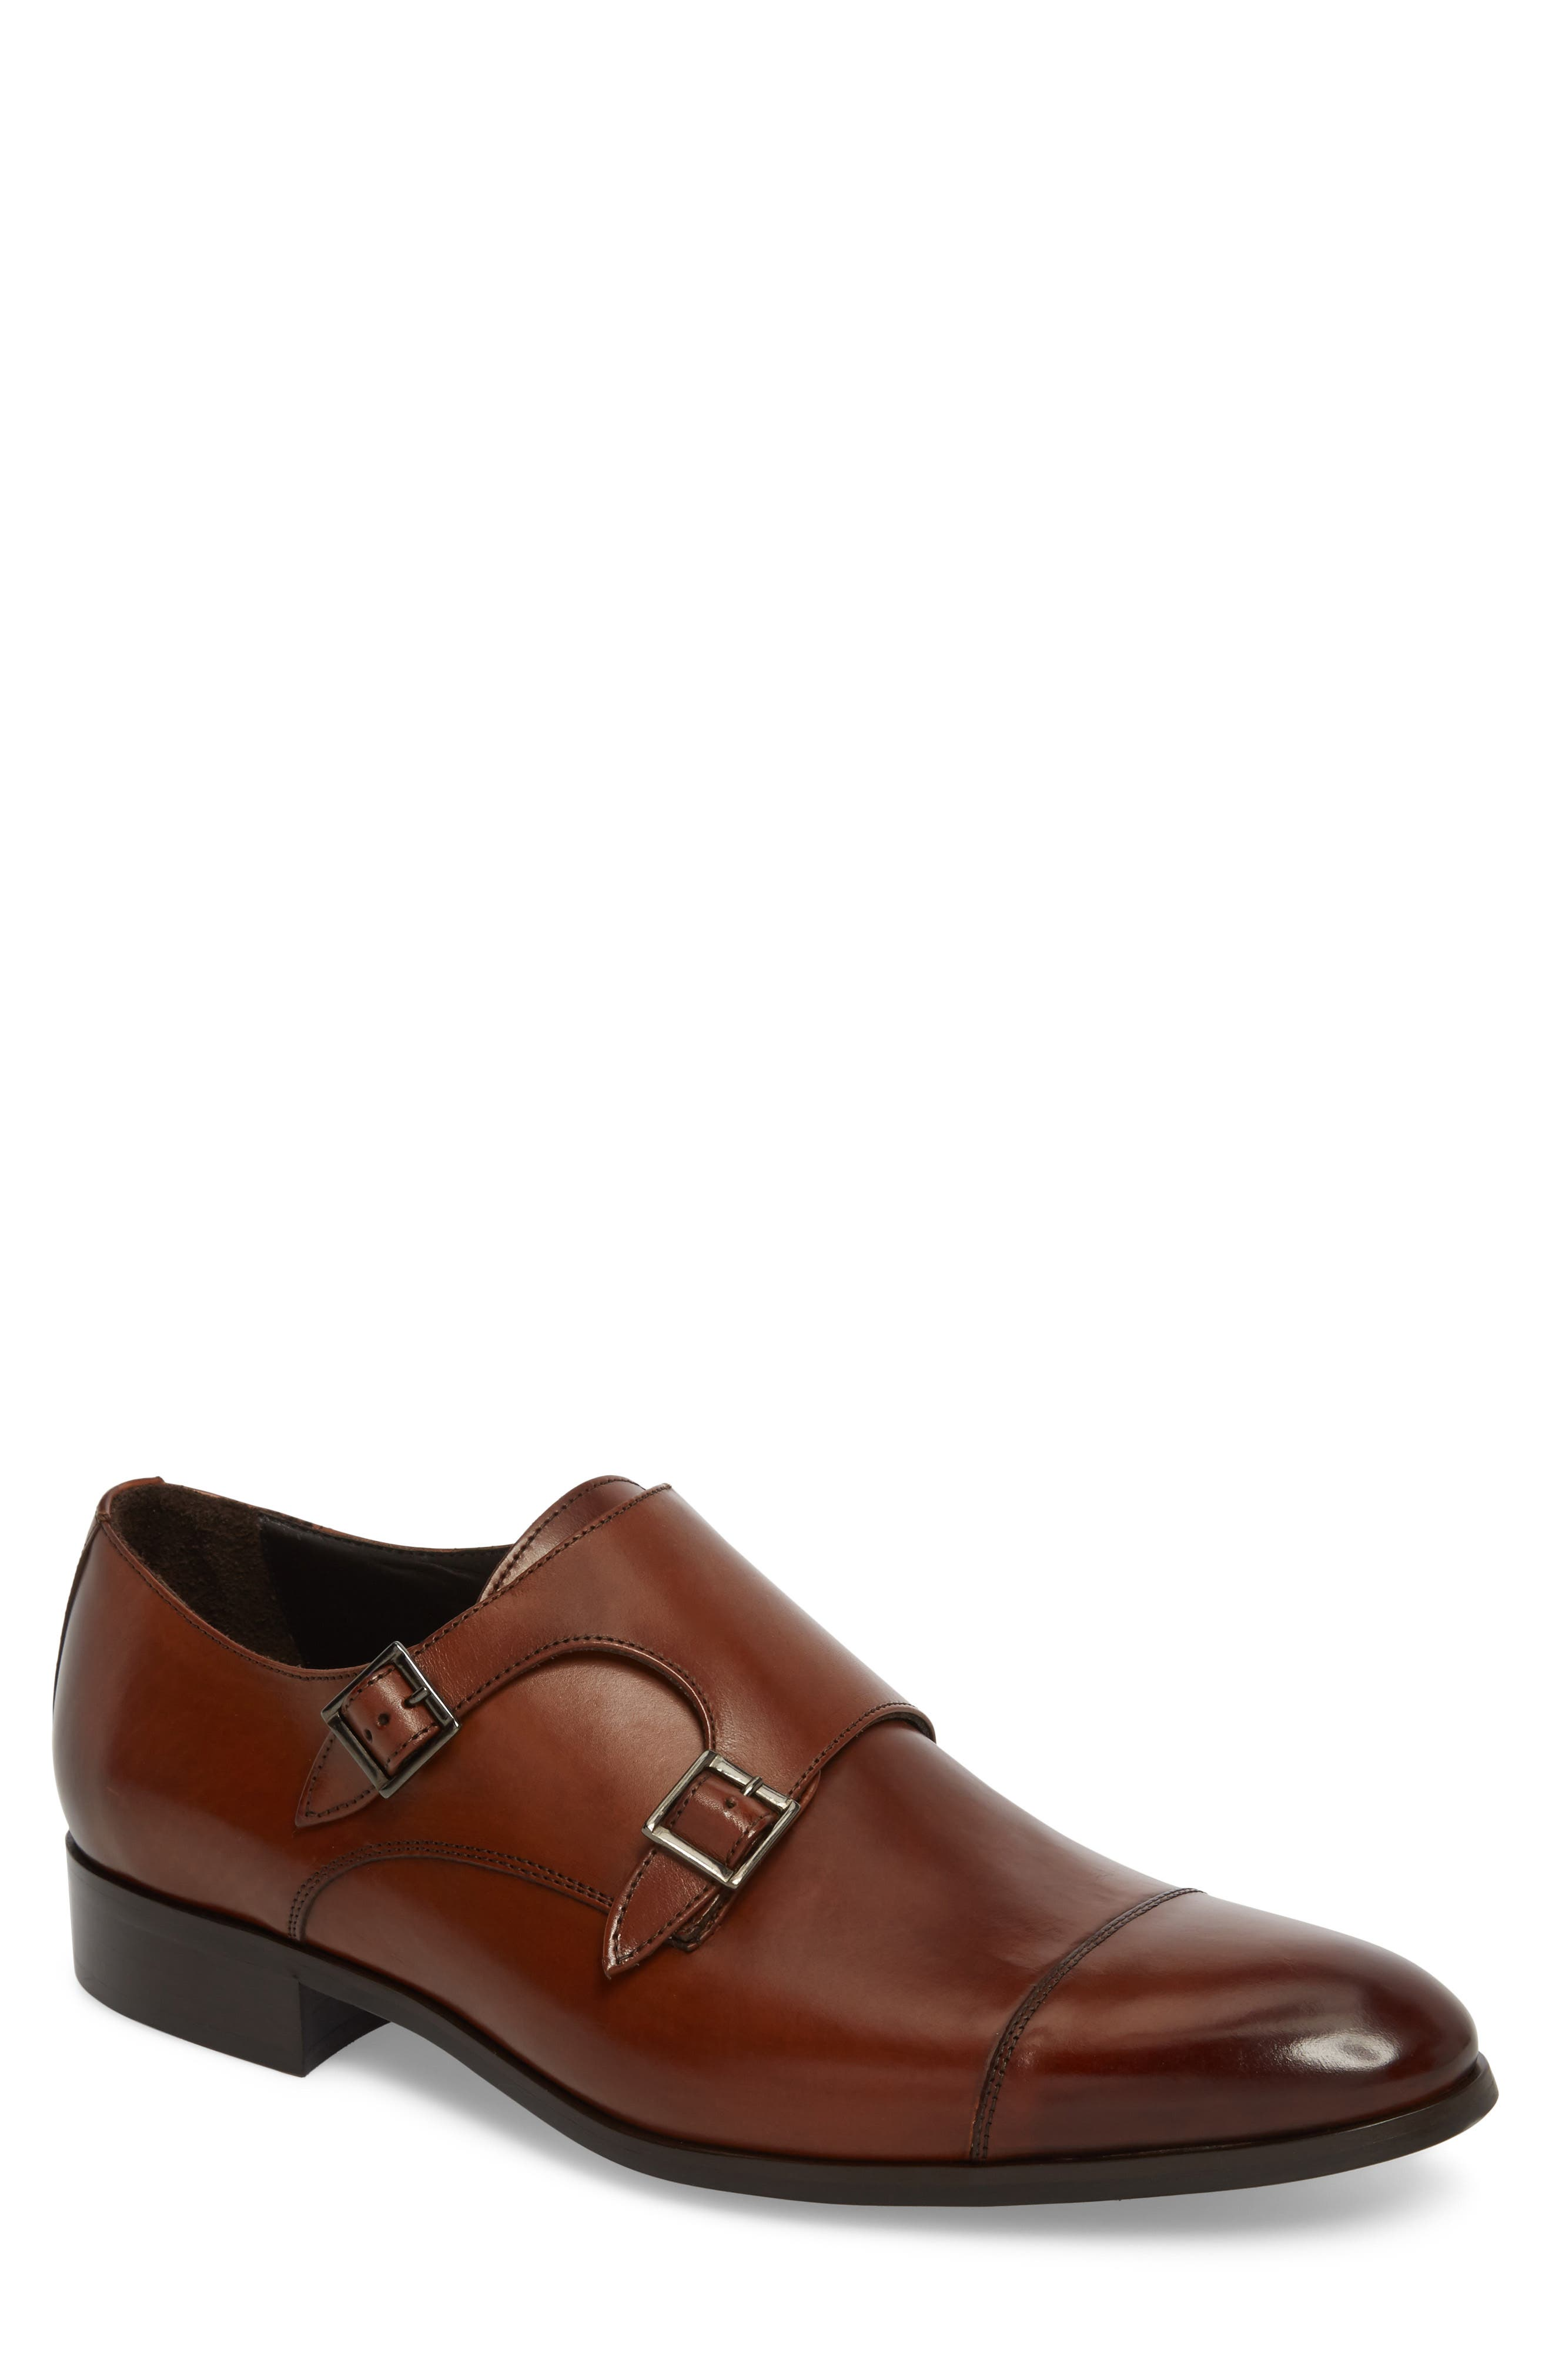 To Boot New York Bankston Cap Toe Double Strap Monk Shoe, Brown